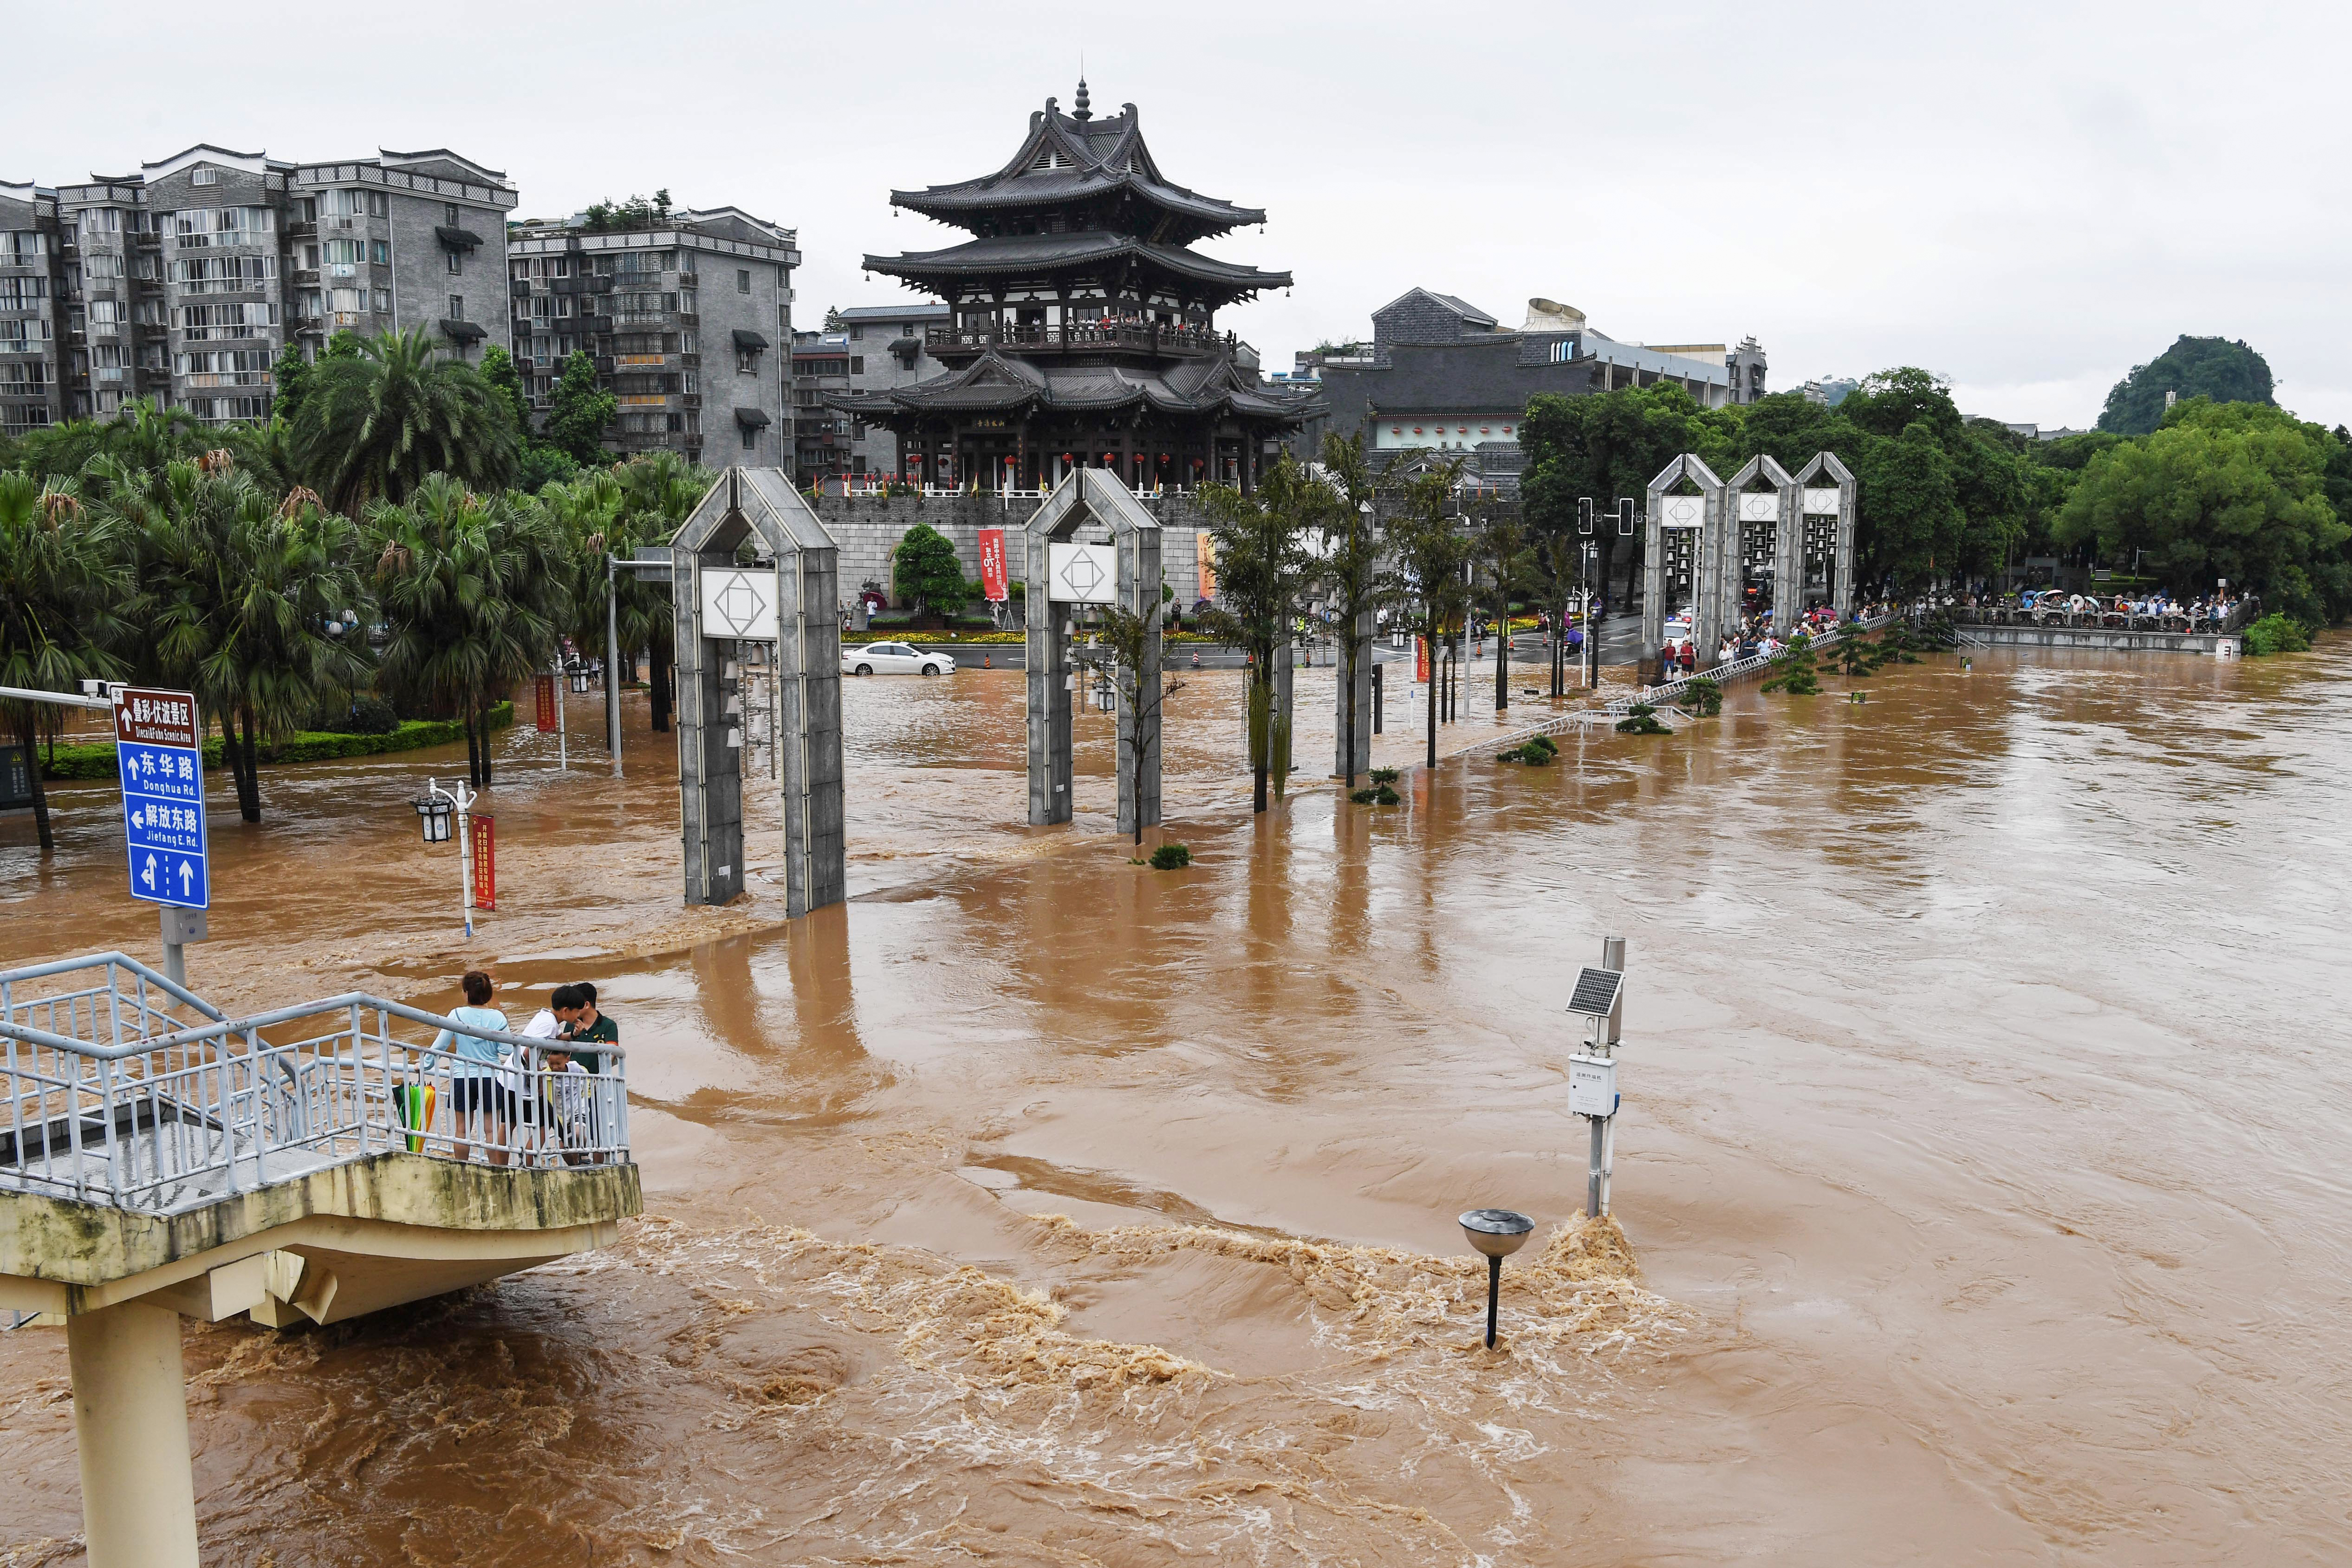 Floods in Guilin, China